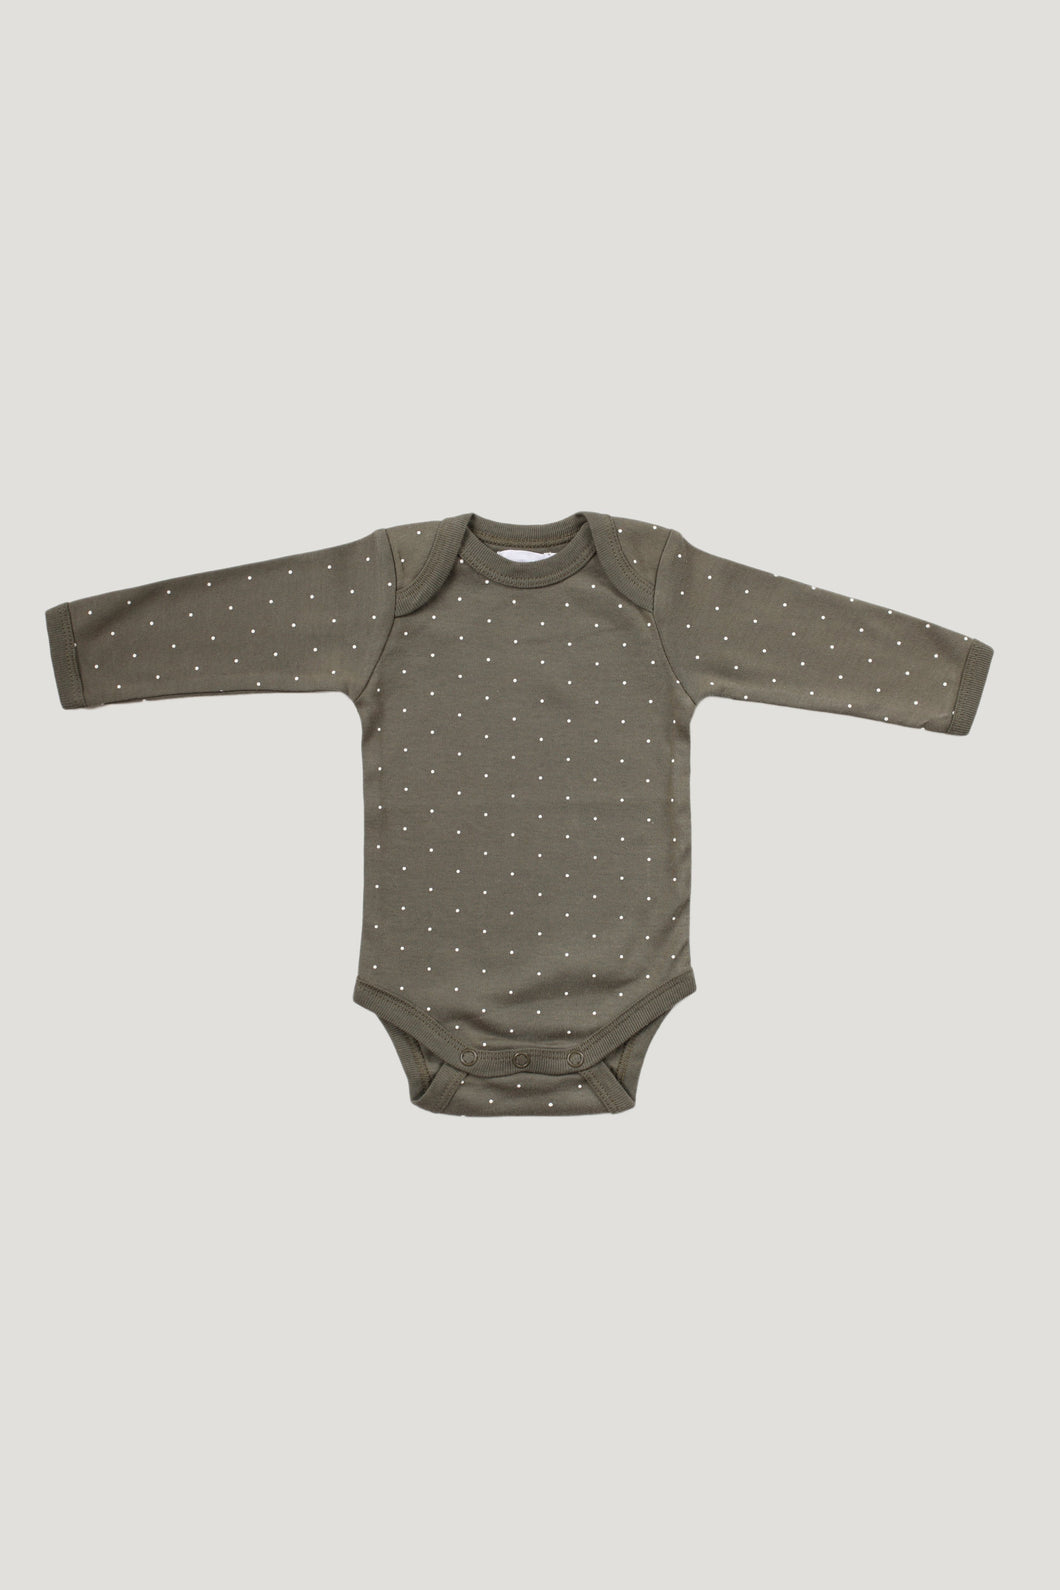 Jamie Kay Organic Cotton Bodysuit- Olive Dot